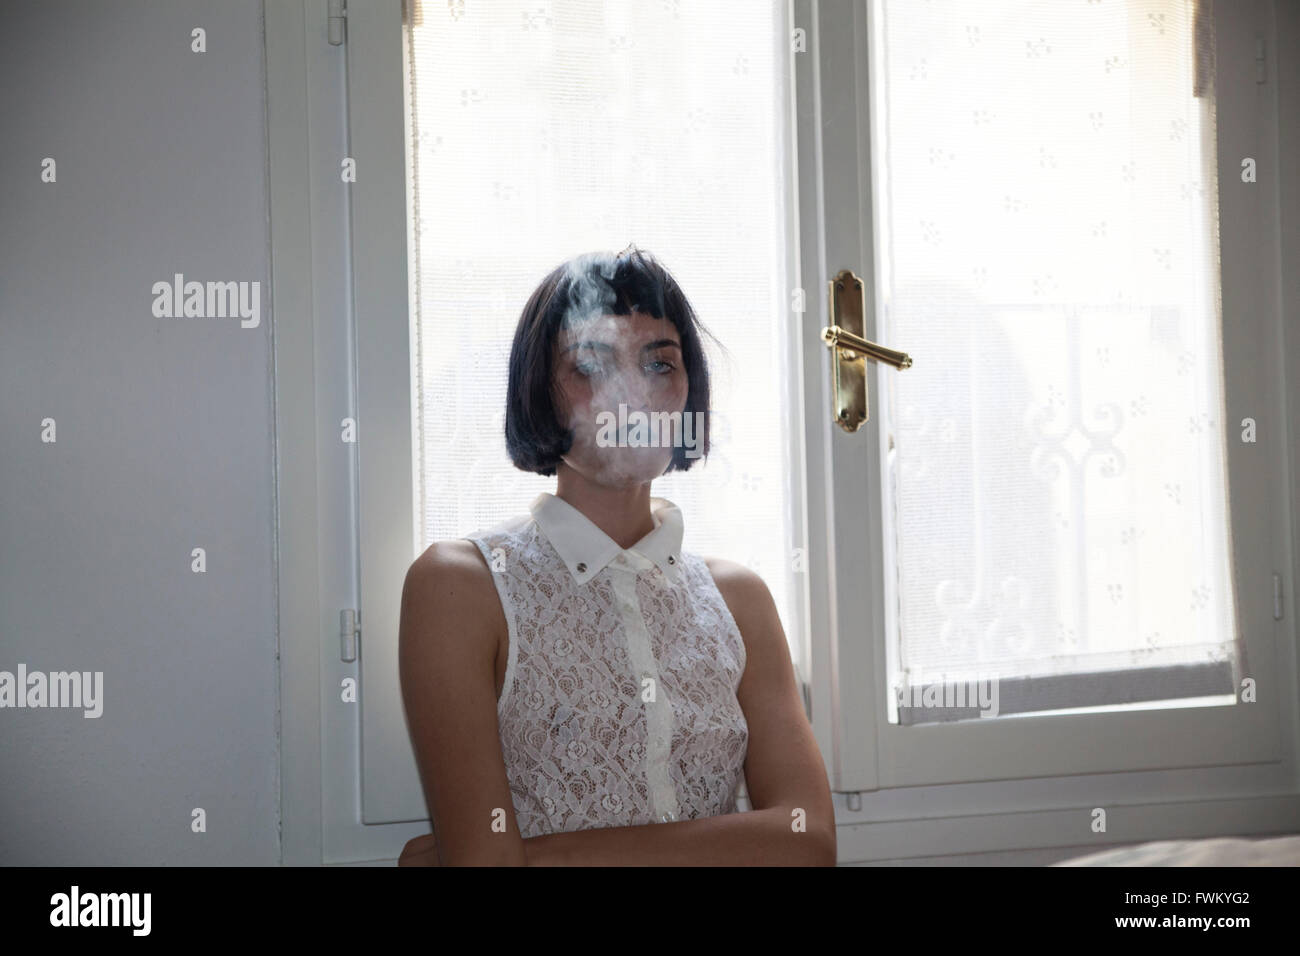 Portrait Of Woman Smoking Against Window At Home - Stock Image